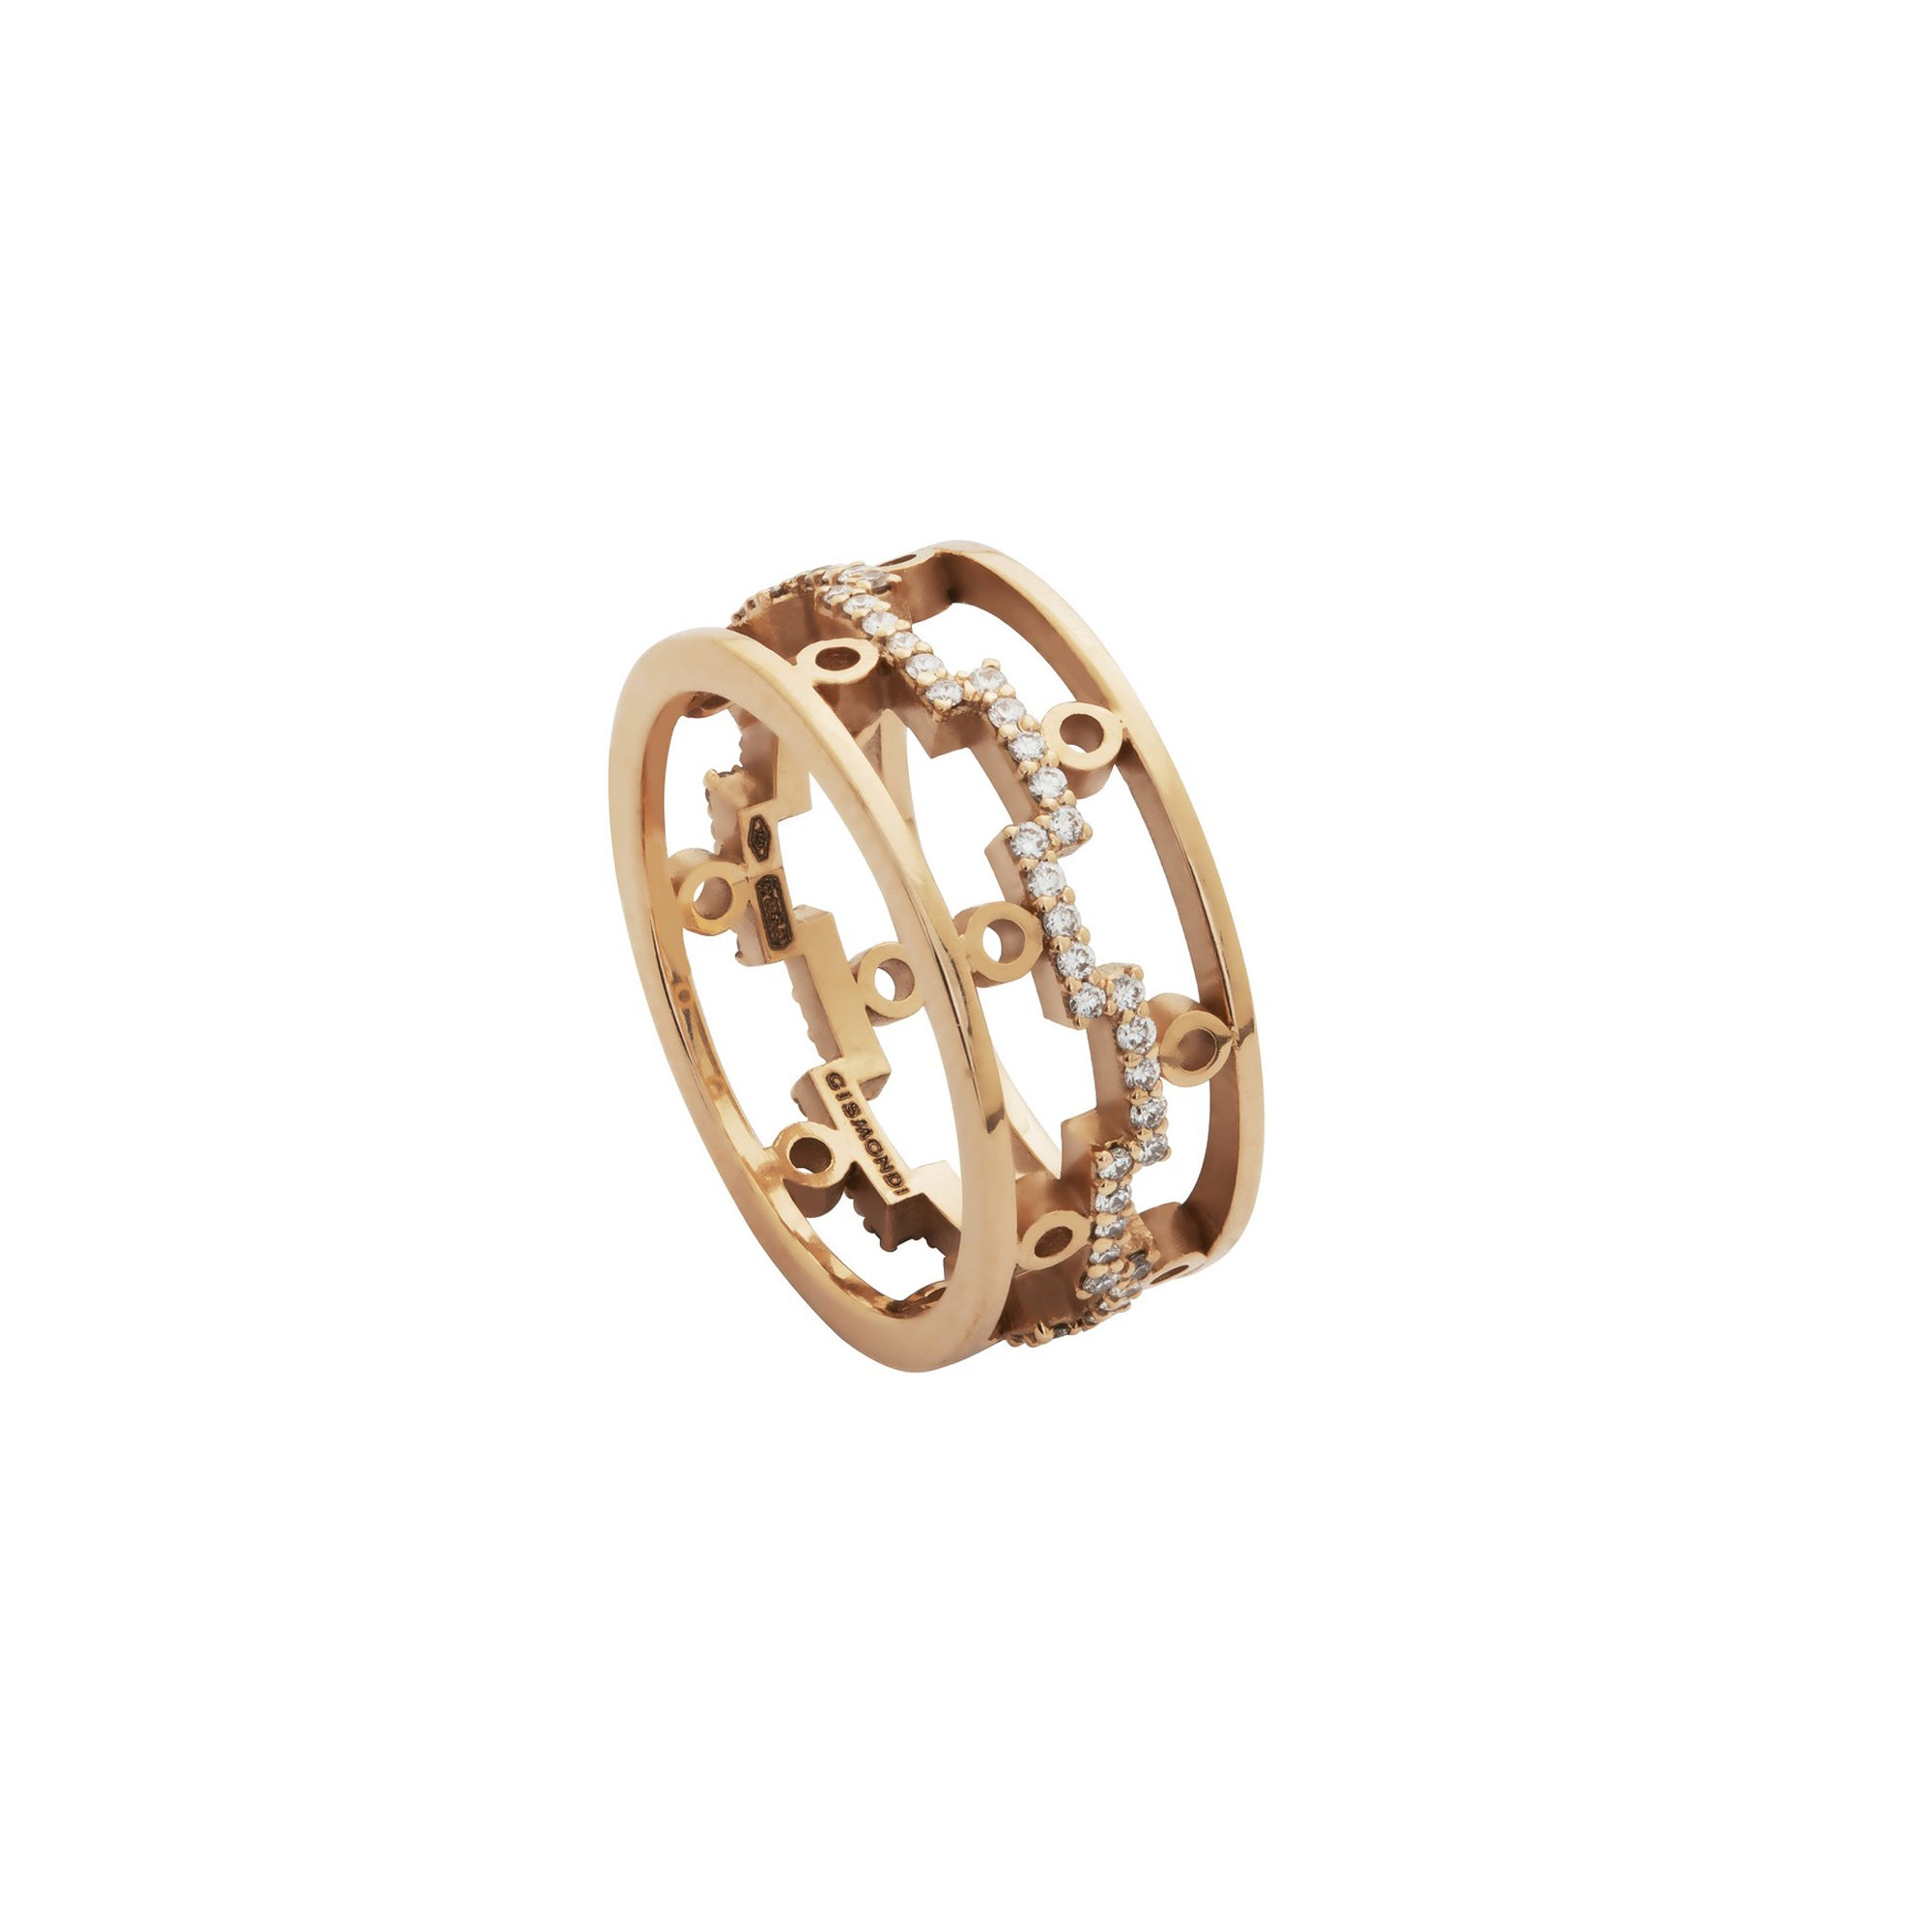 Dedalo 2020 Rose Gold Ring With Diamonds